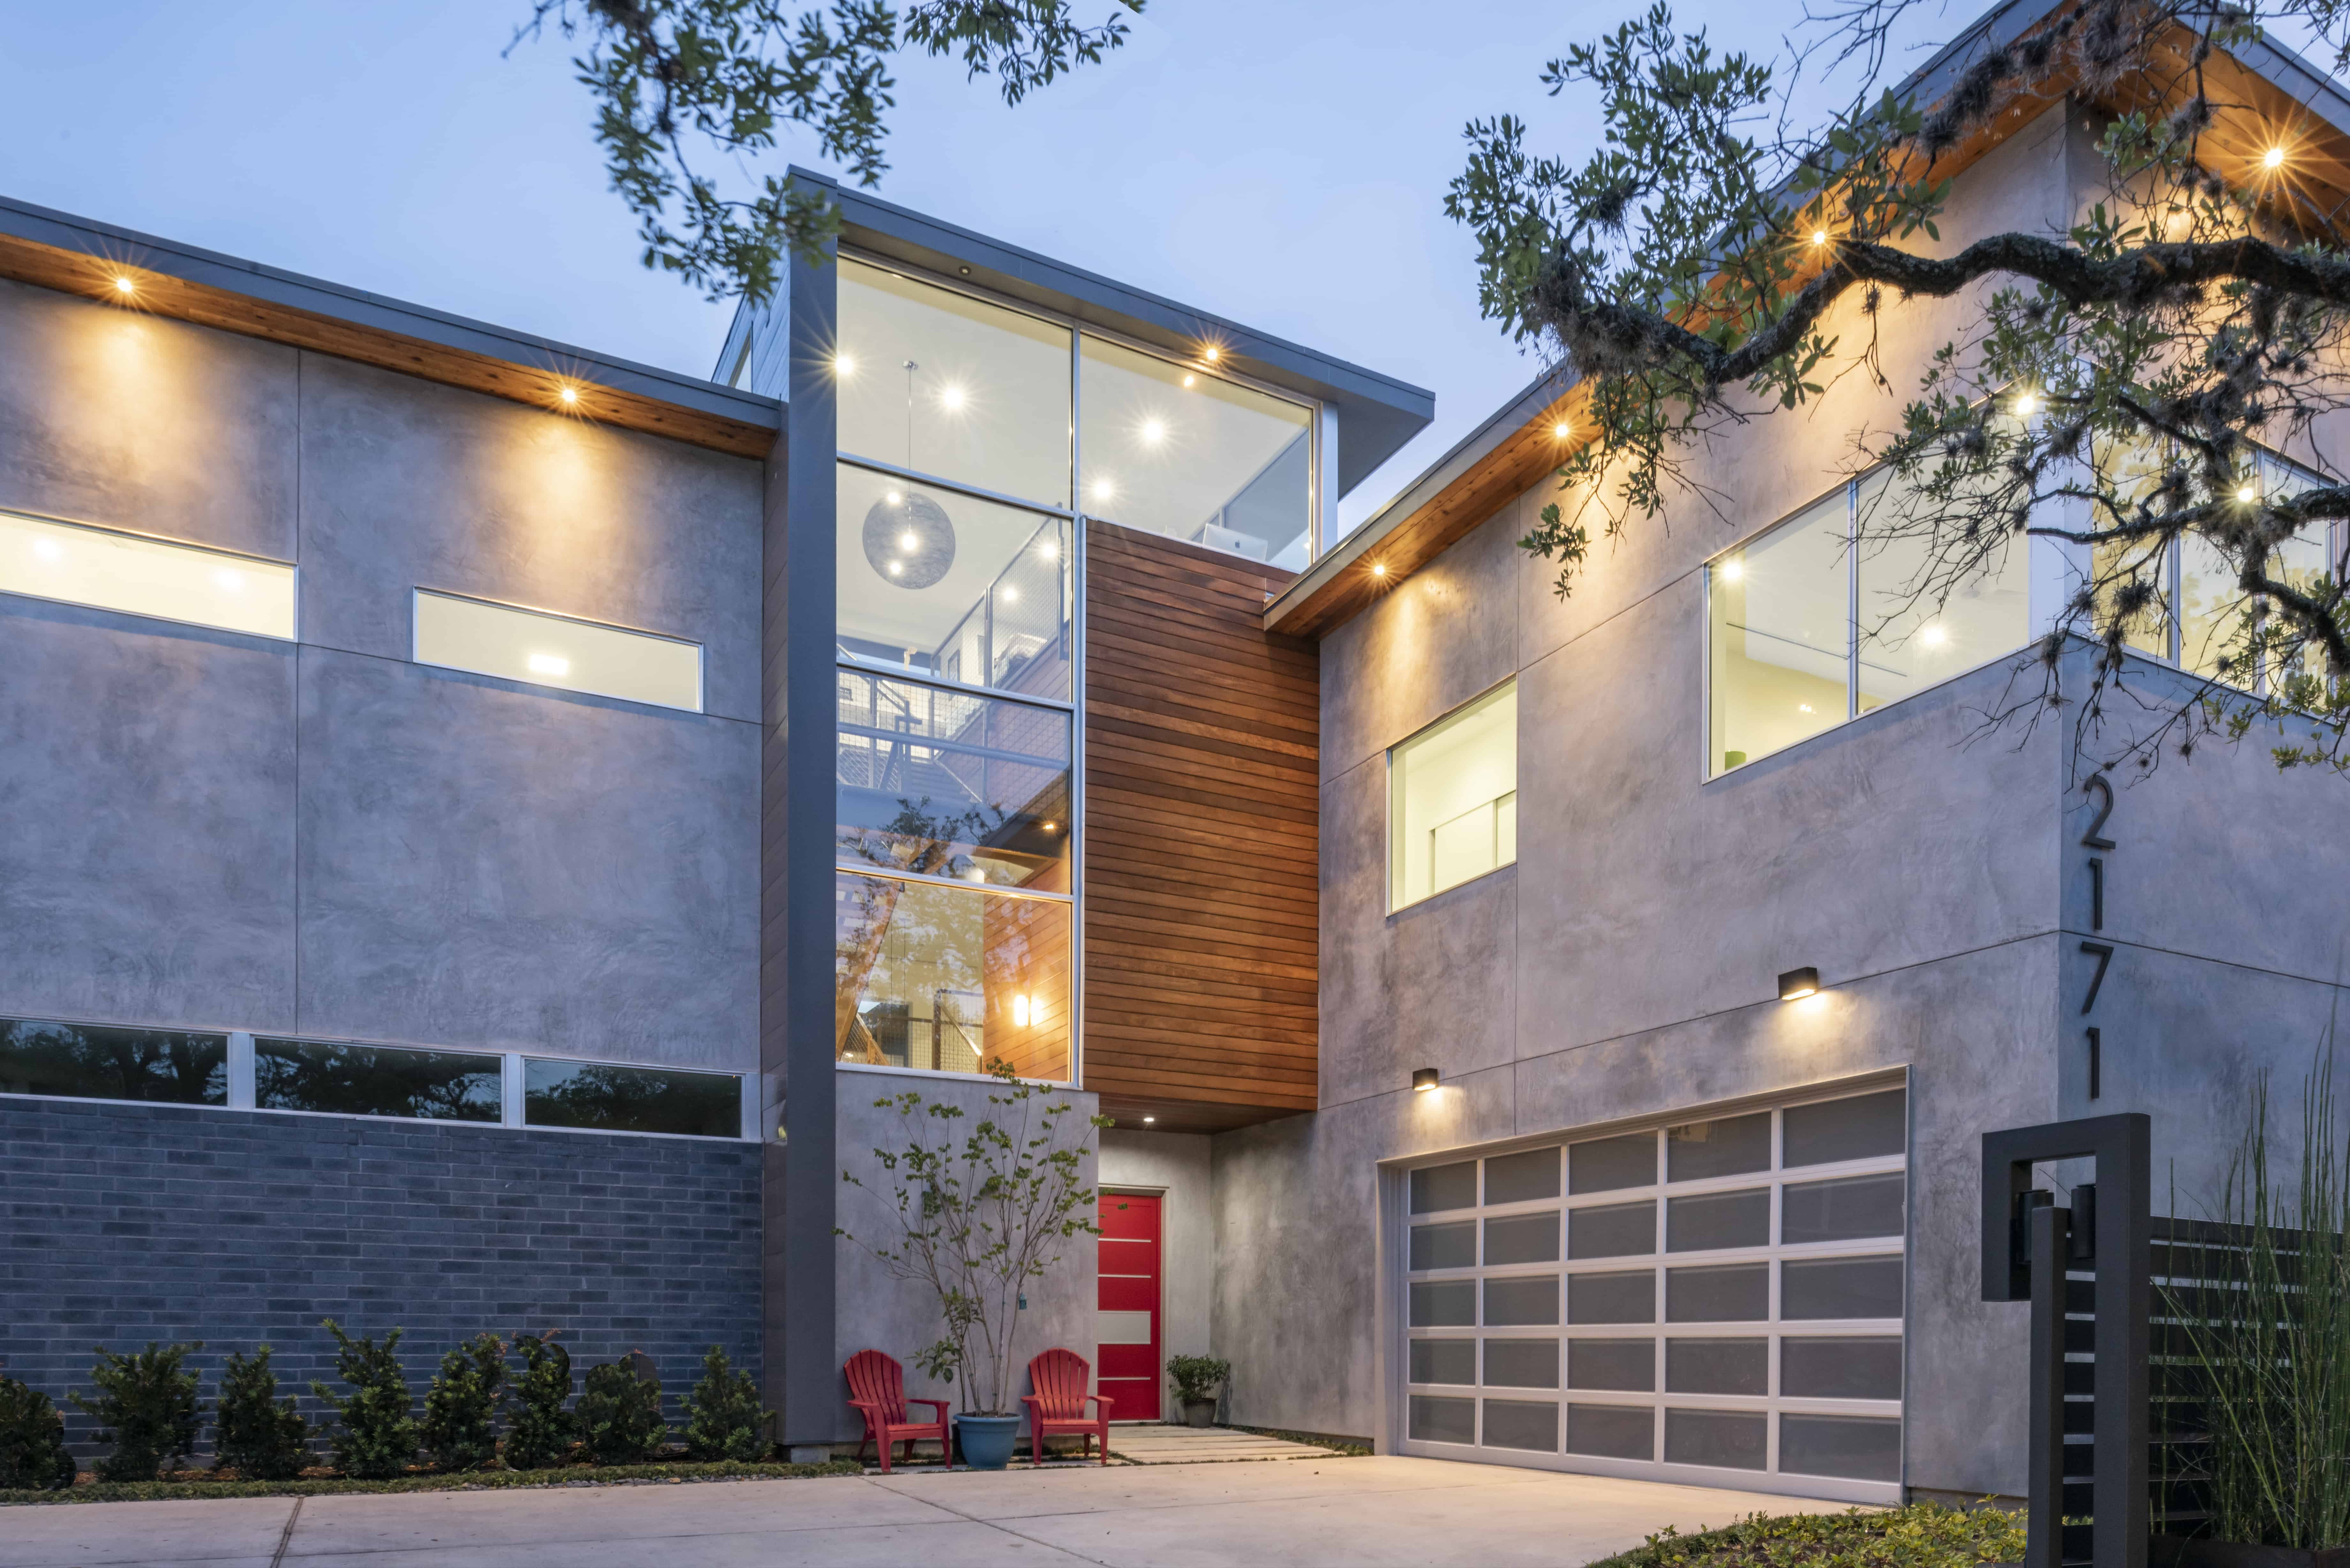 university boulevard modern home family lifestyle facade with natural stucco brick and wood glass garage door